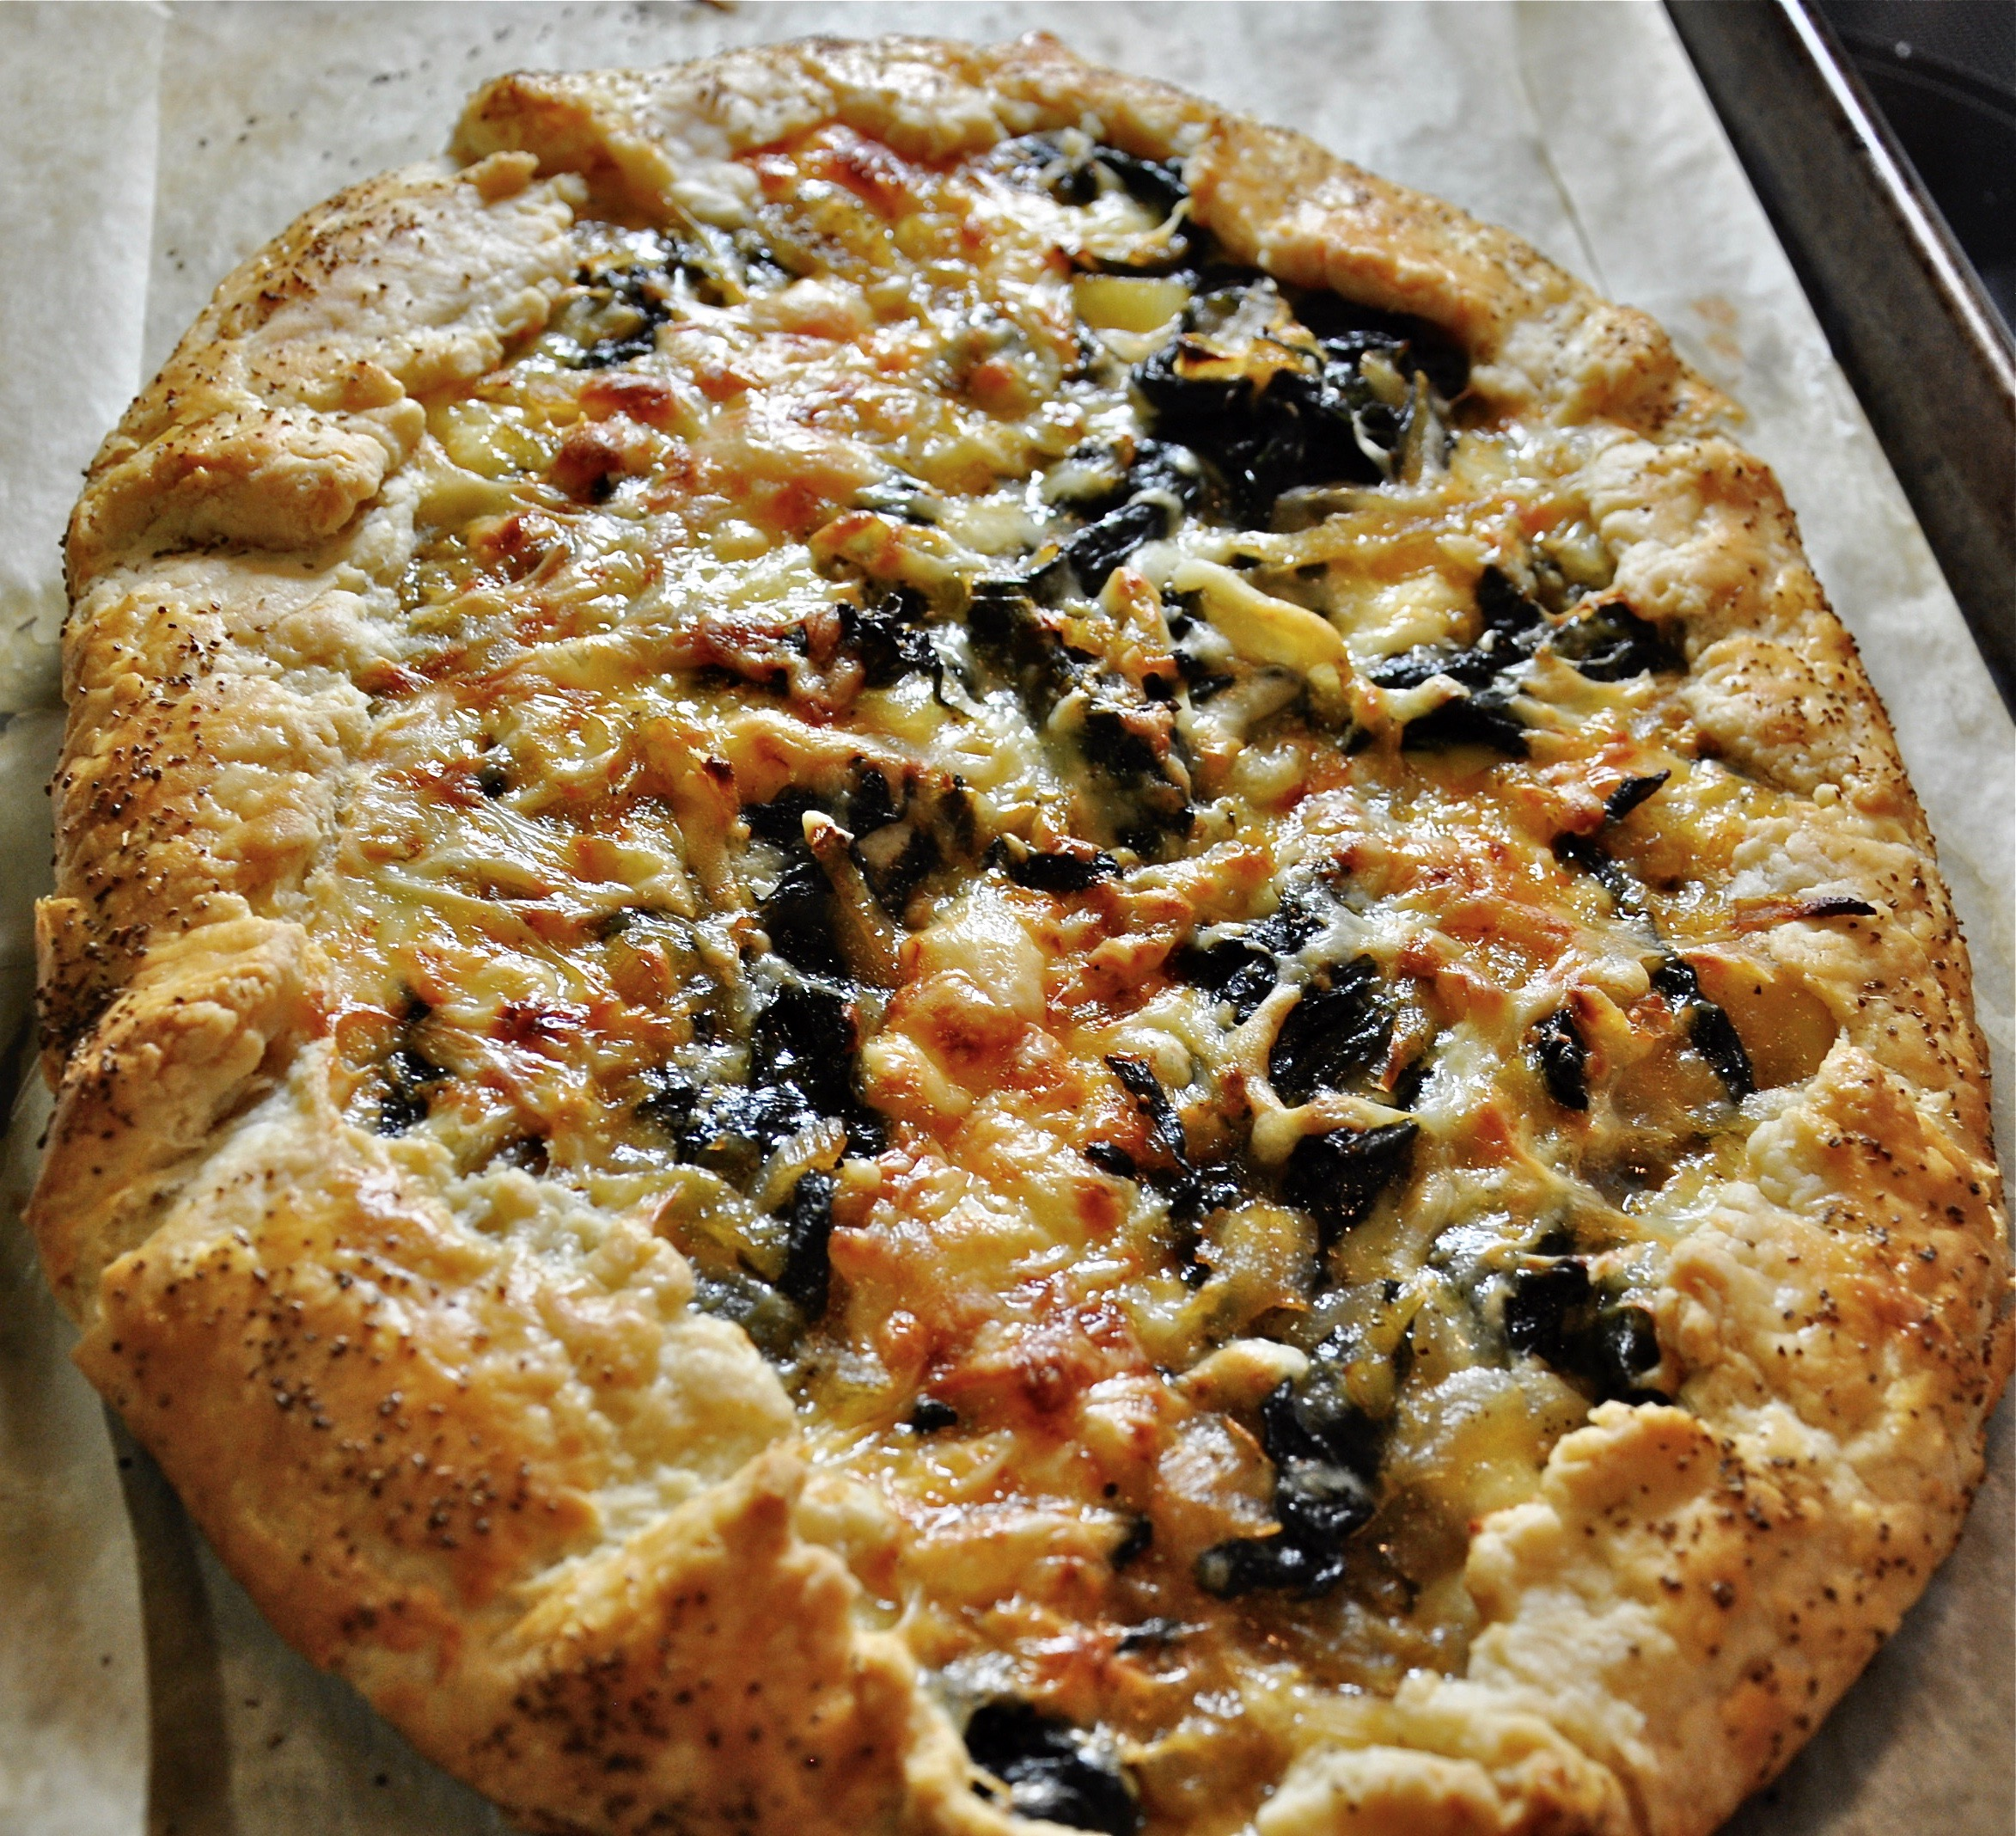 Swiss Chard Galette from The Harvest Baker by Ken Haedrich